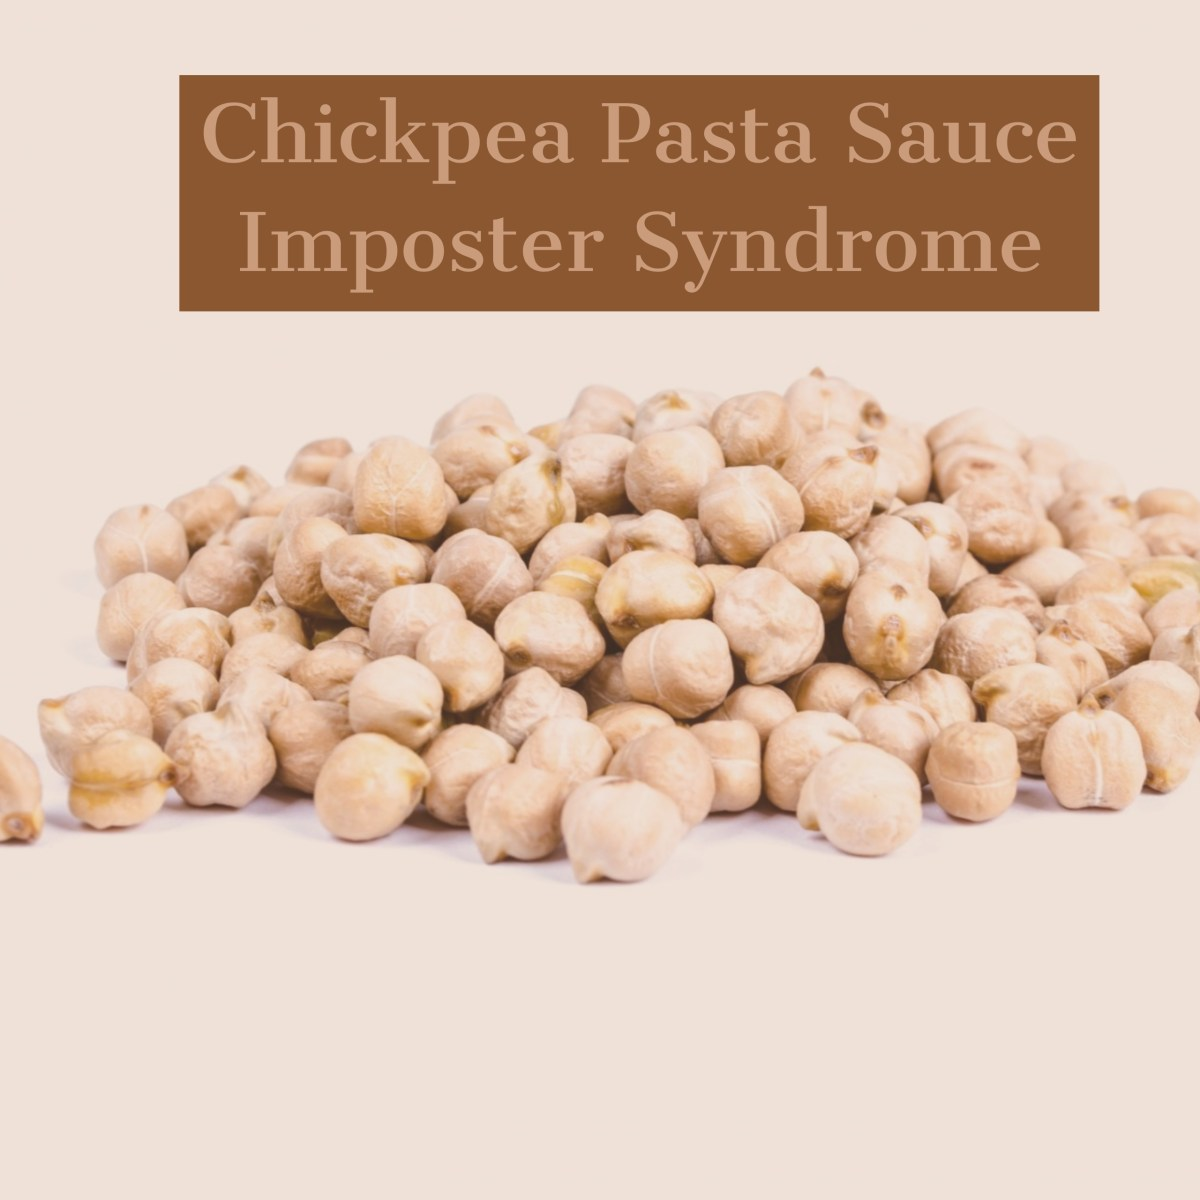 Chickpea Pasta Sauce and Imposter Syndrome – They Totally Go Together